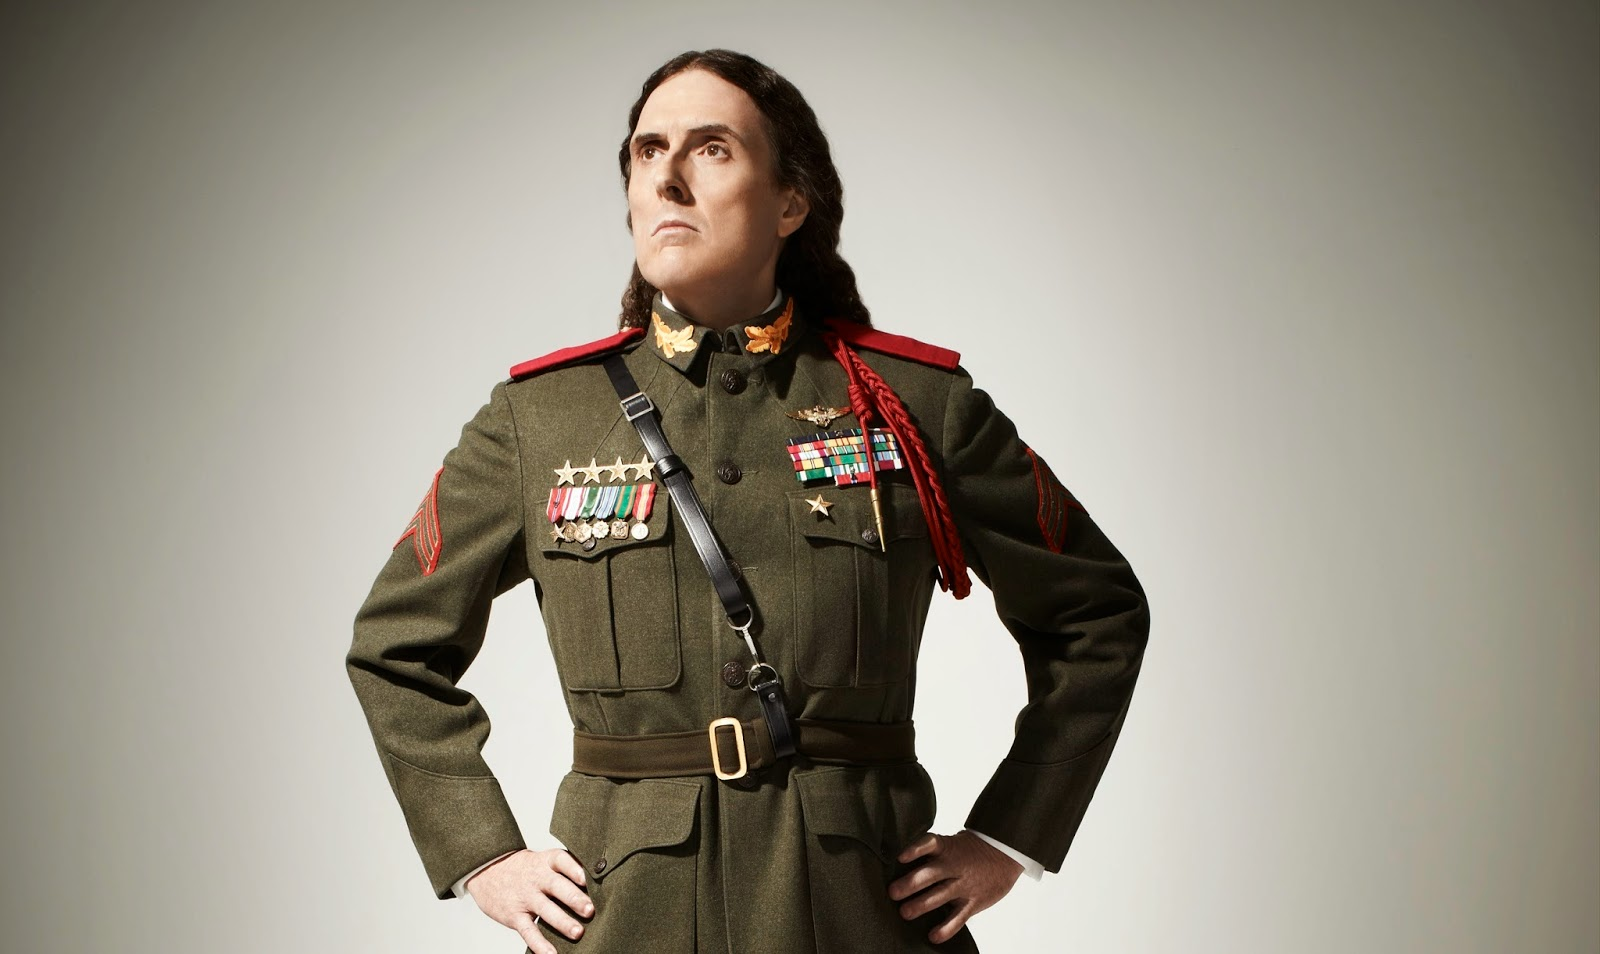 You *will* enjoy Weird Al's latest album, Mandatory Fun